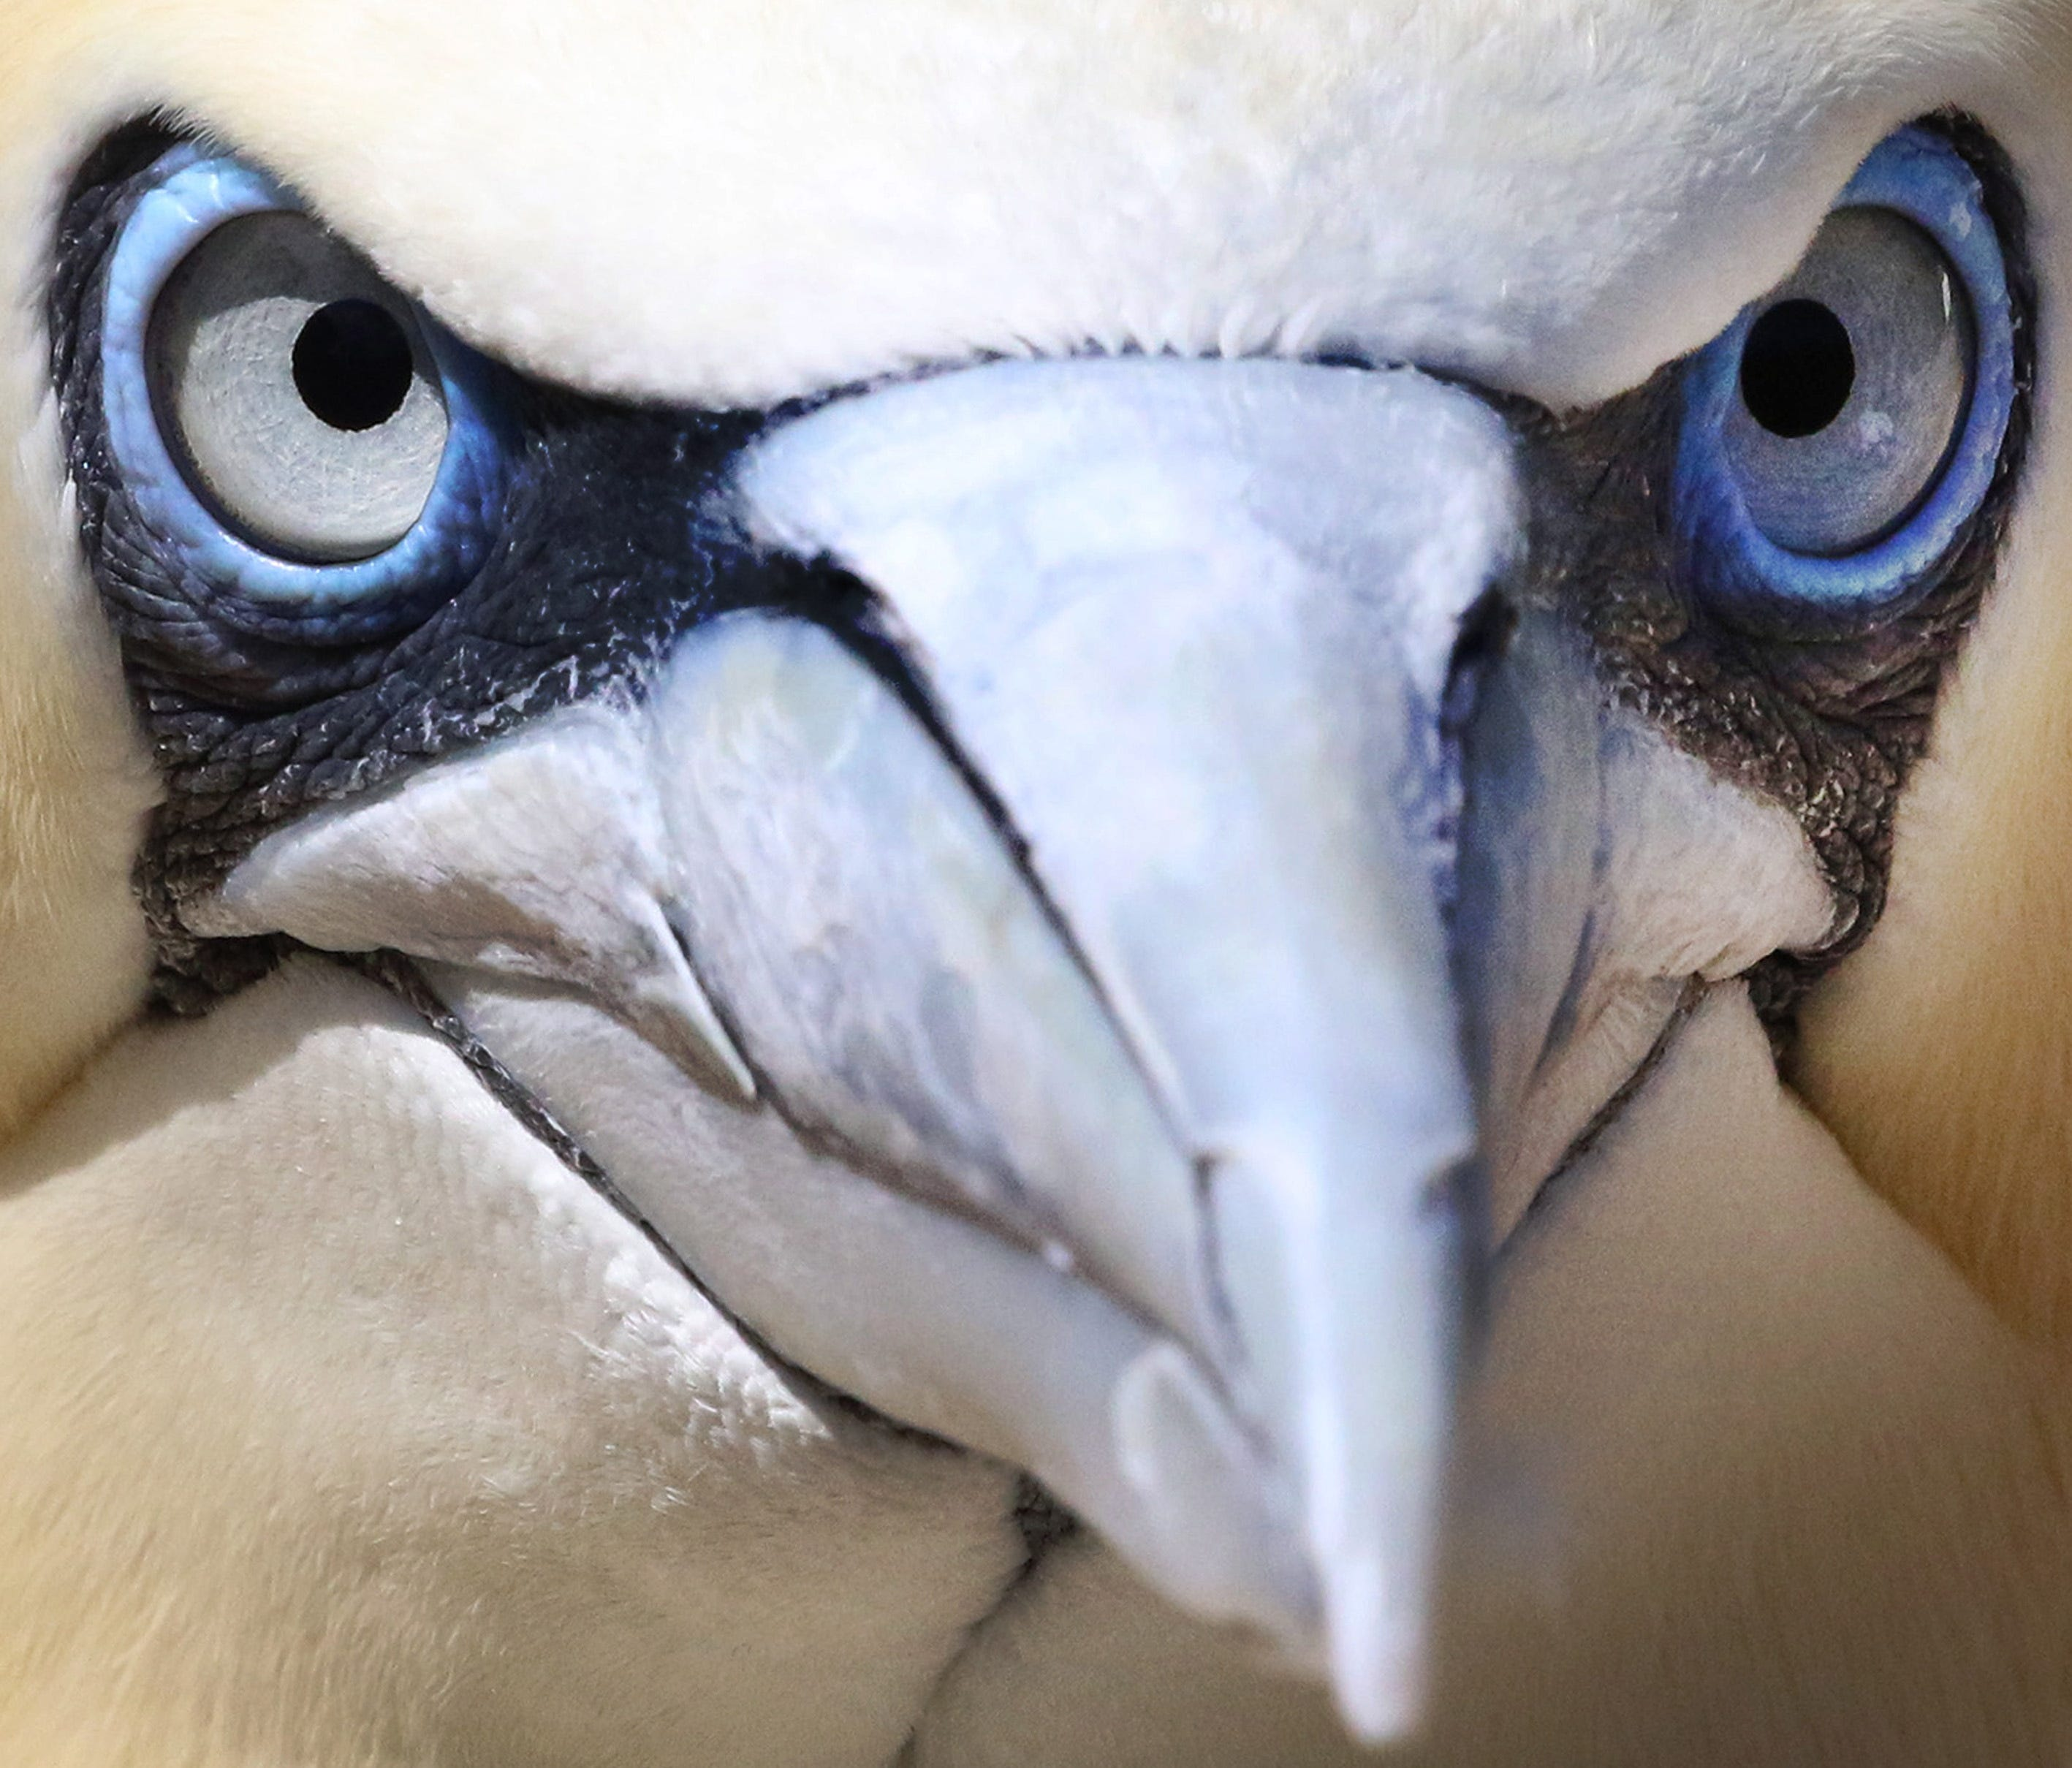 This is a Northern Gannet at the zoo of Bremerhaven in northern Germany.